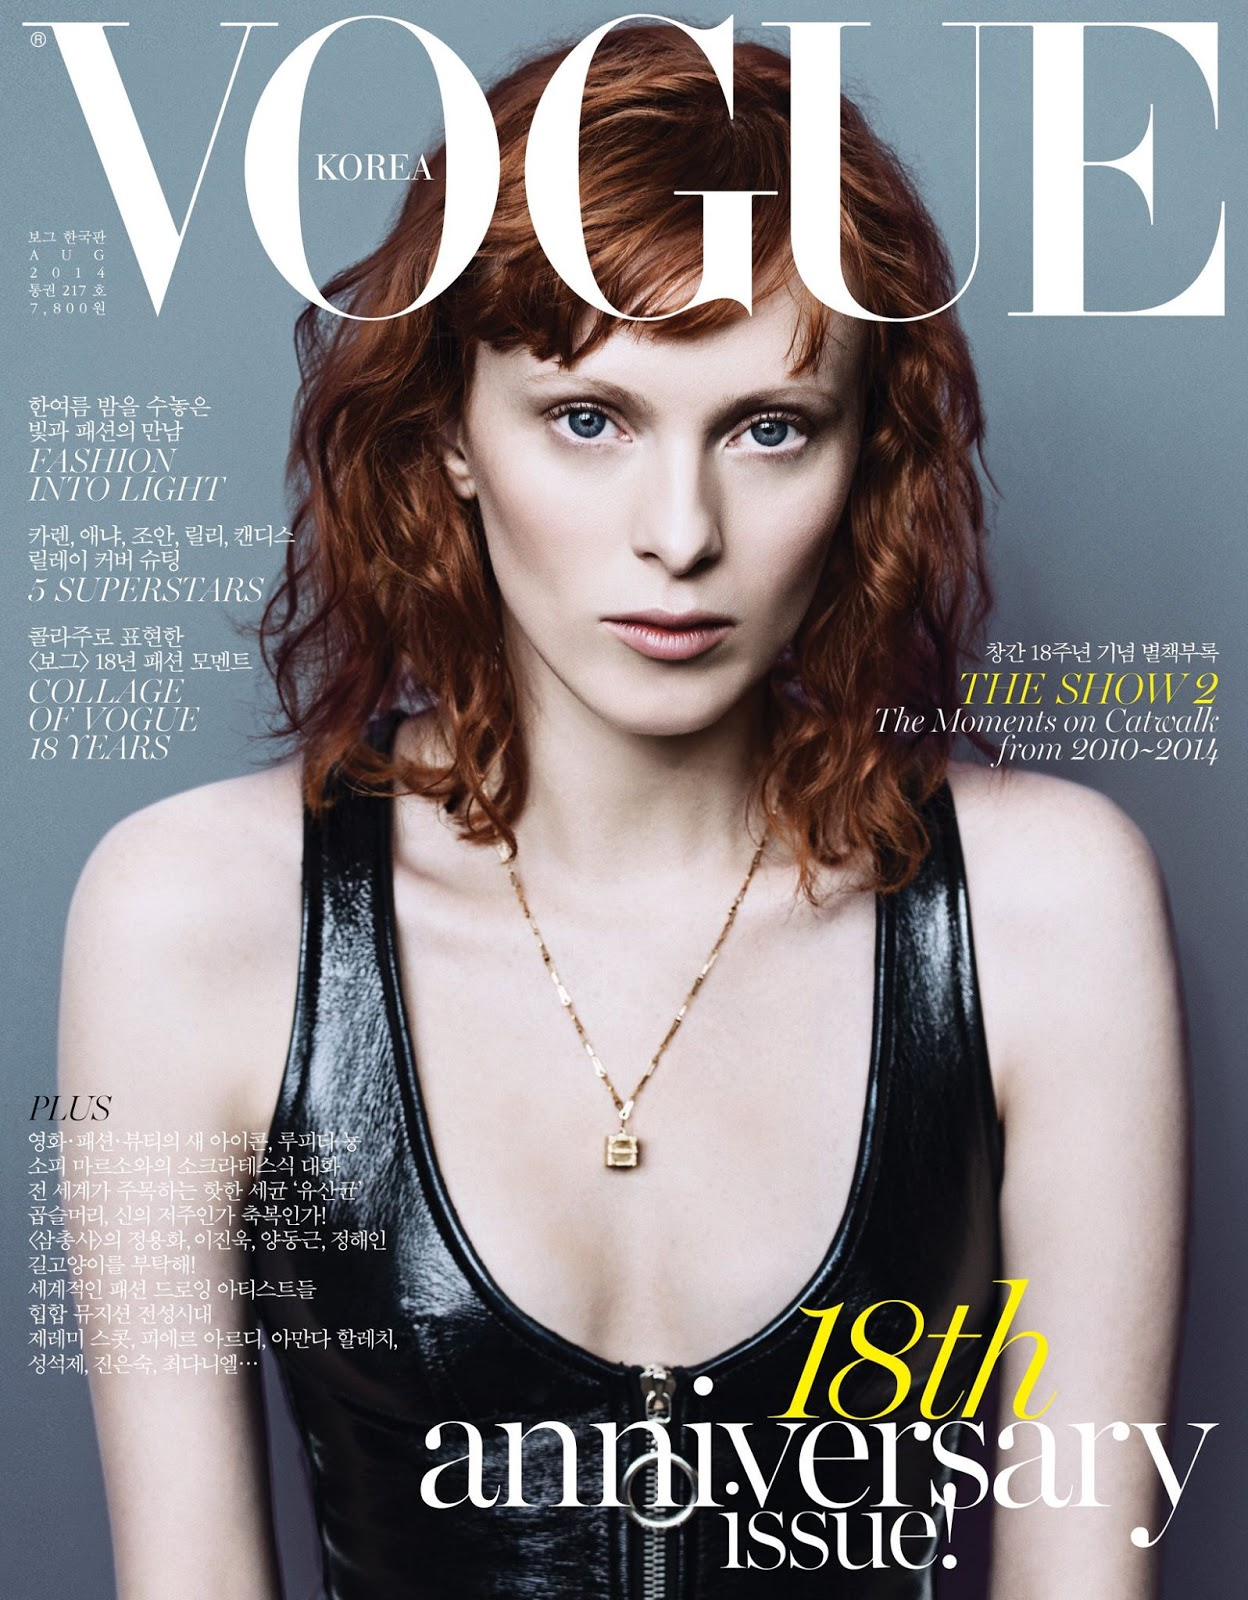 Elson karen vogue ukraine september catalog photo